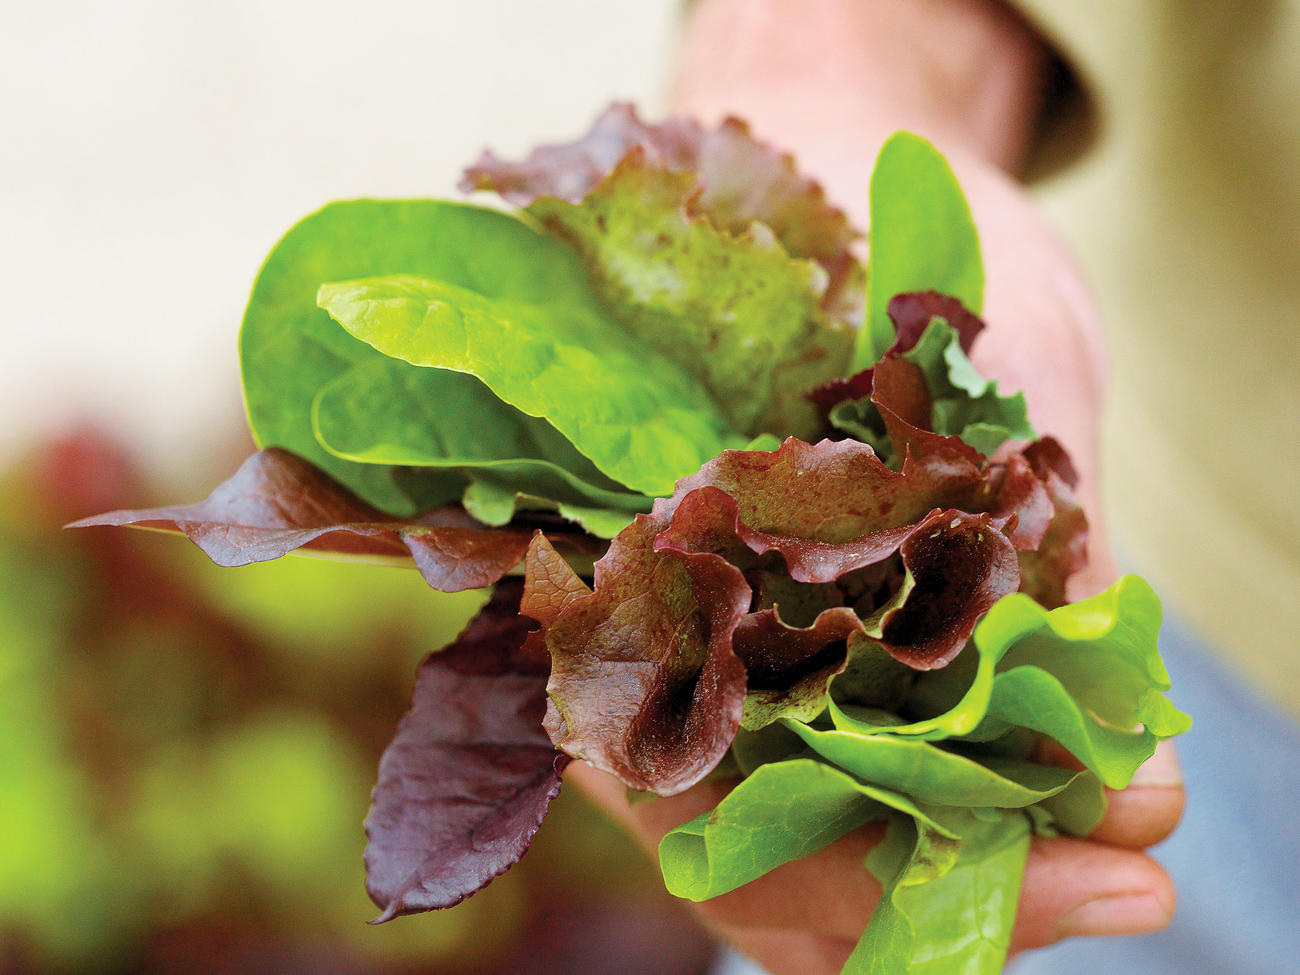 How to Harvest Lettuce